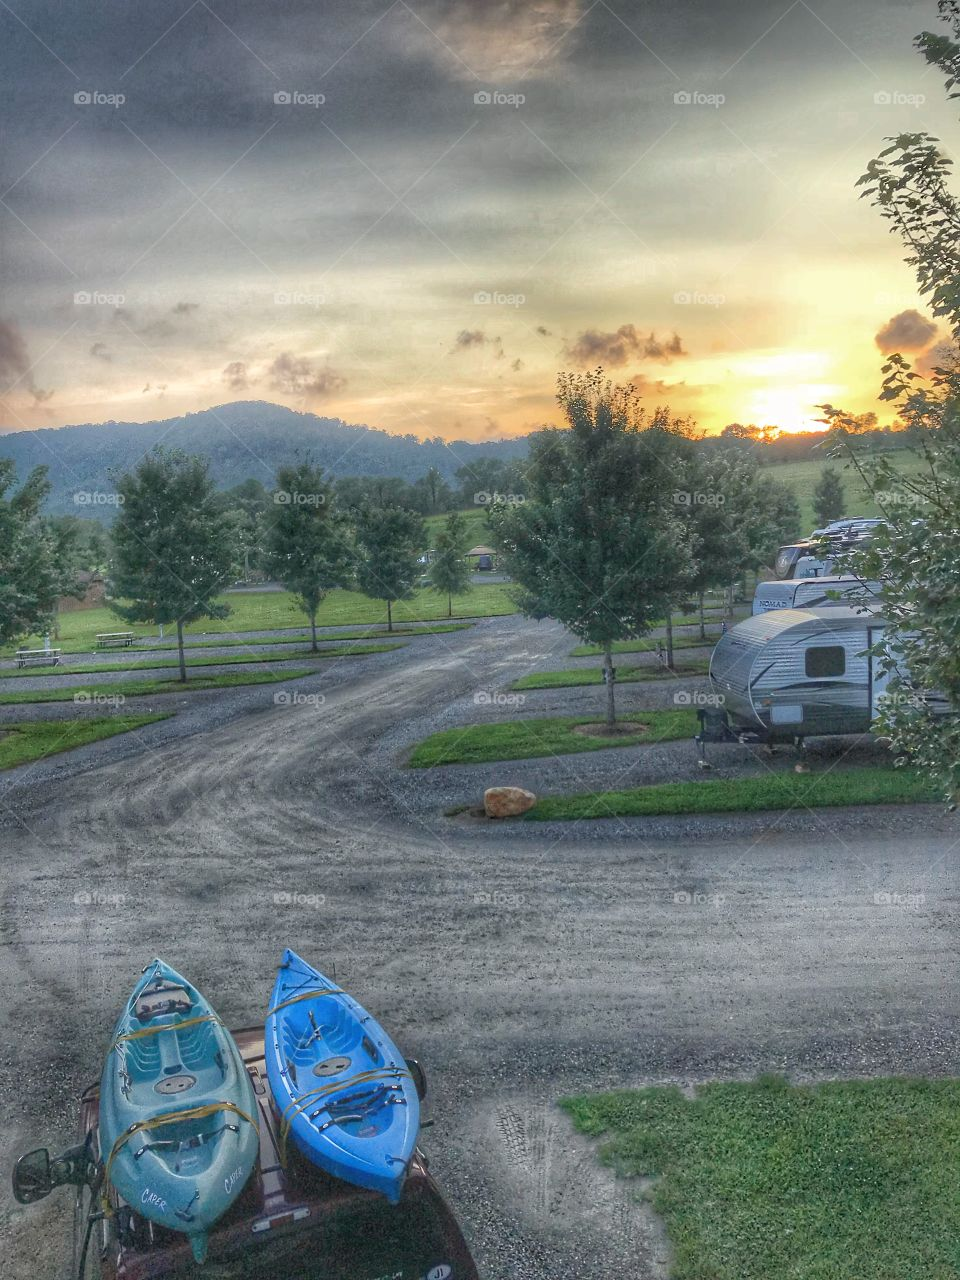 View from the top of our camper at sunset which includes the mountains and our kayaks